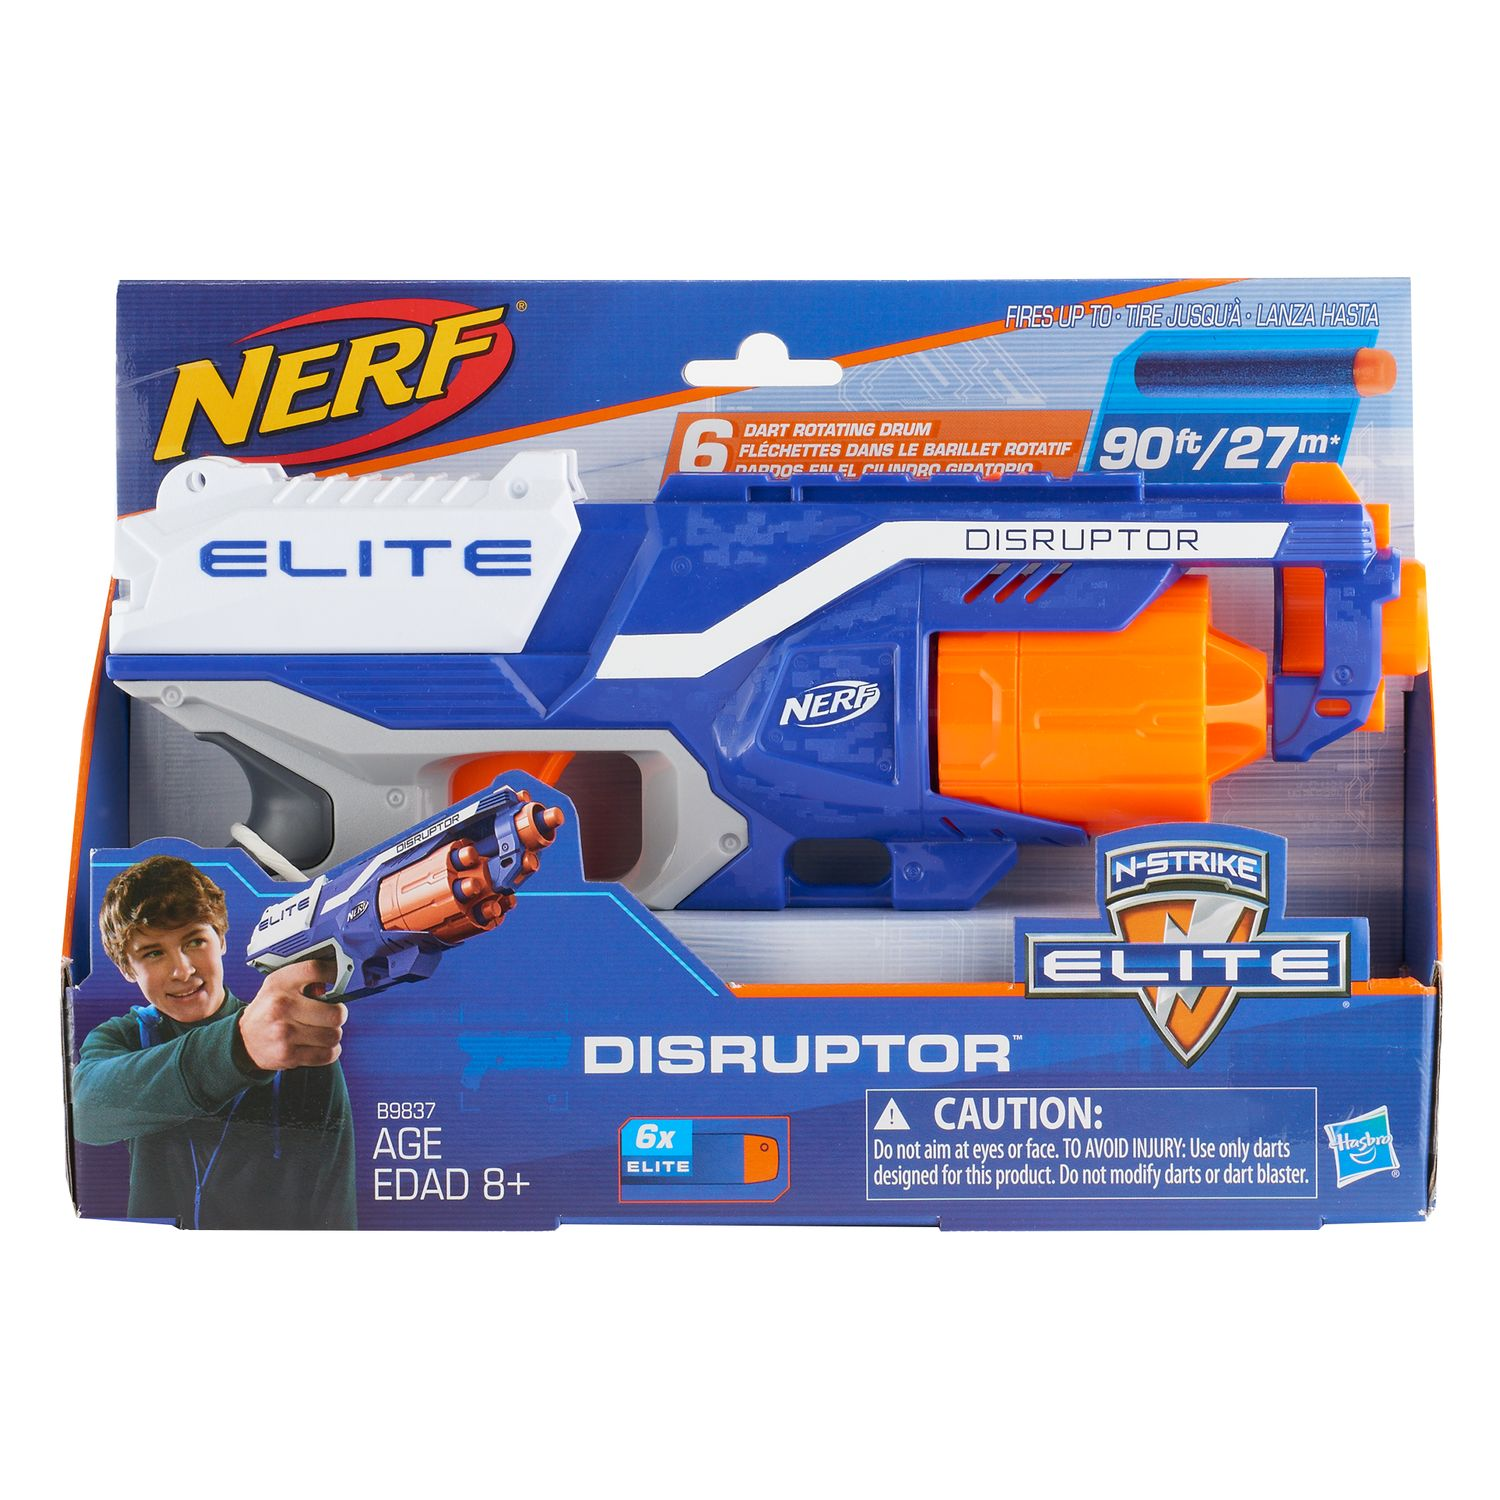 This Nerf playset includes a Nerf gun, a target, and Nerf darts.